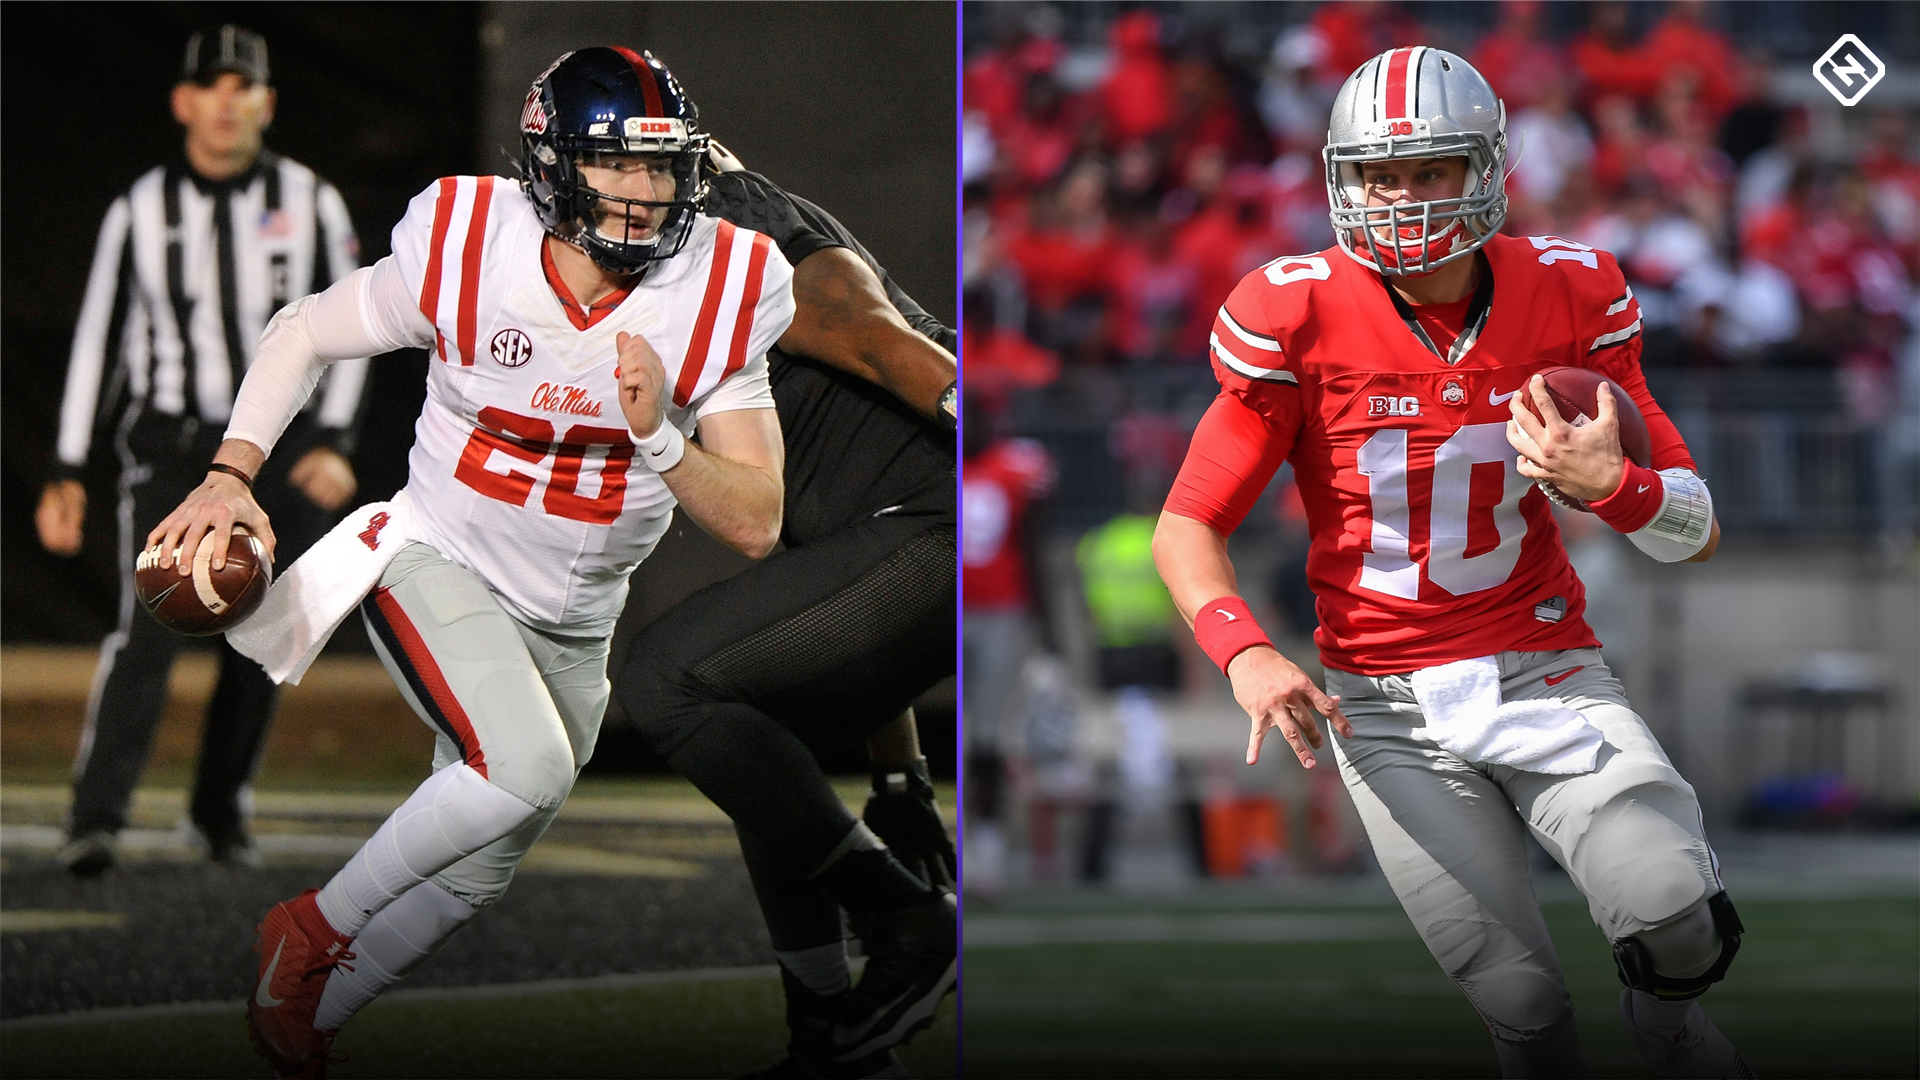 Shea-patterson-joe-burrow-052218-getty-ftr_fp527u7no2171iv3gr4l2ysus